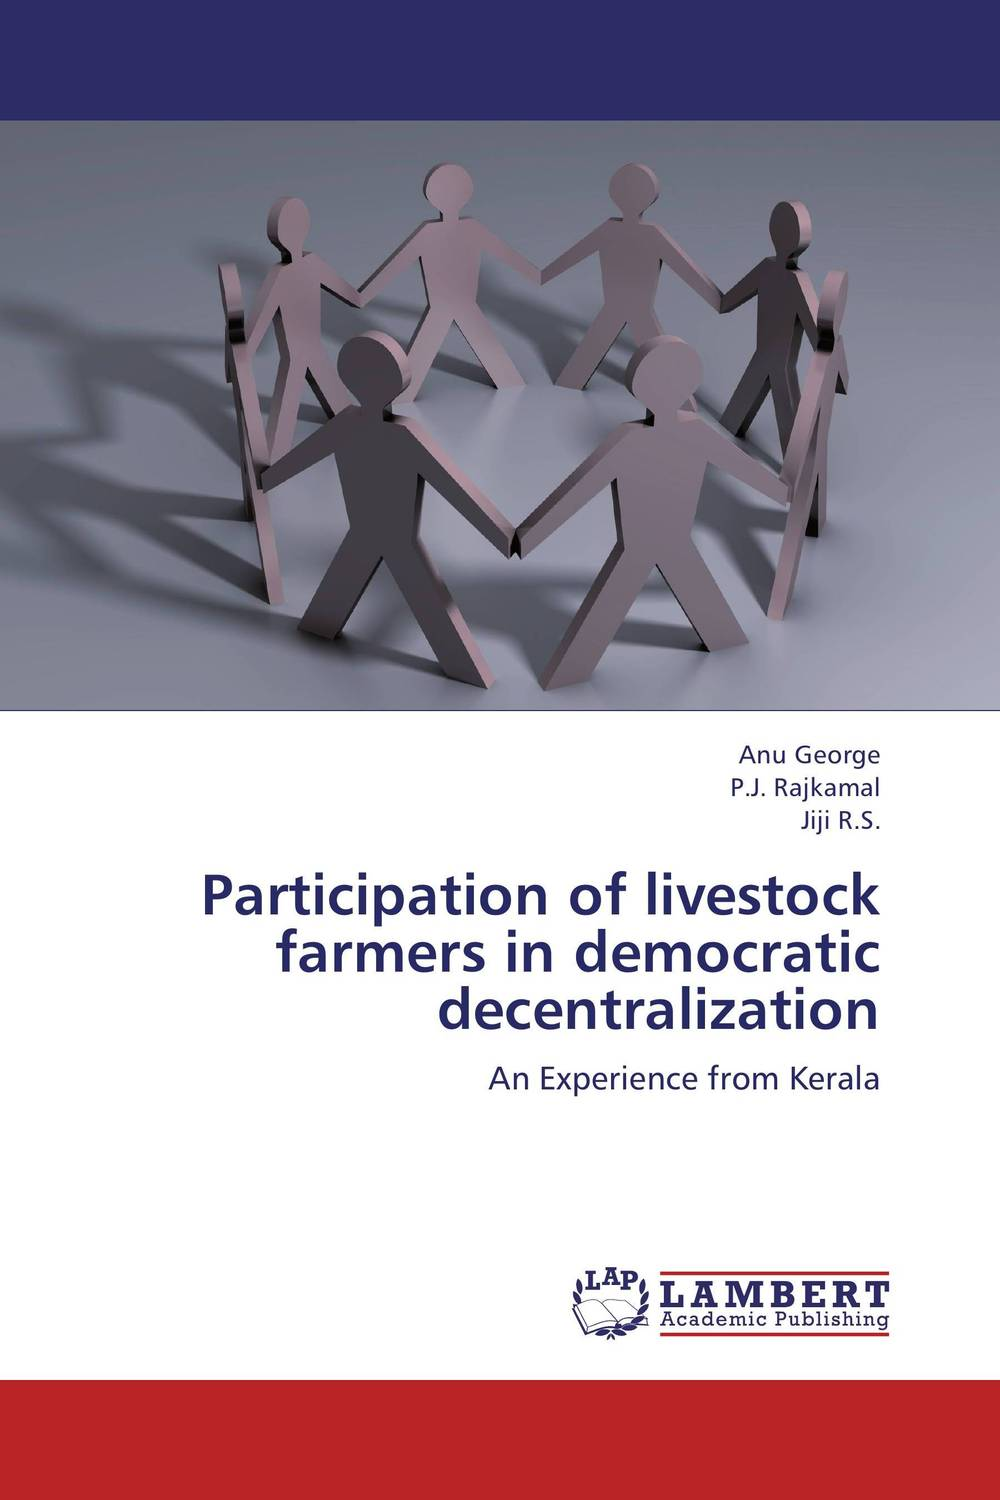 Participation of livestock farmers in democratic decentralization the challenges of decentralization in promoting citizen participation